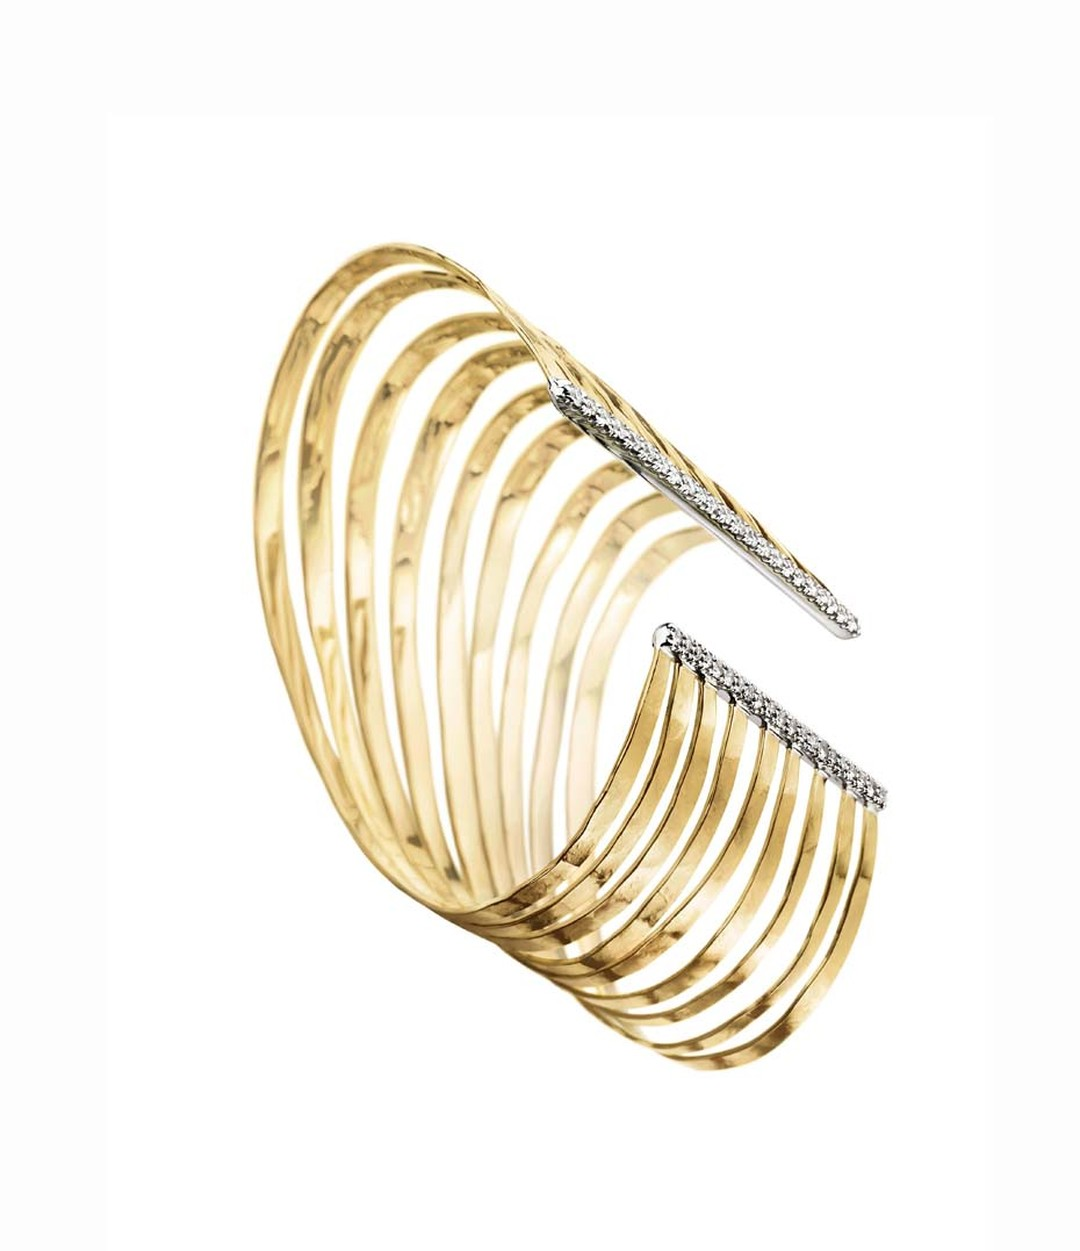 Inspired by the Copan building is H.Stern's 2008 collection of Oscar Niemeyer jewellery featuring a yellow and white gold wave bracelet with diamonds at the edges.